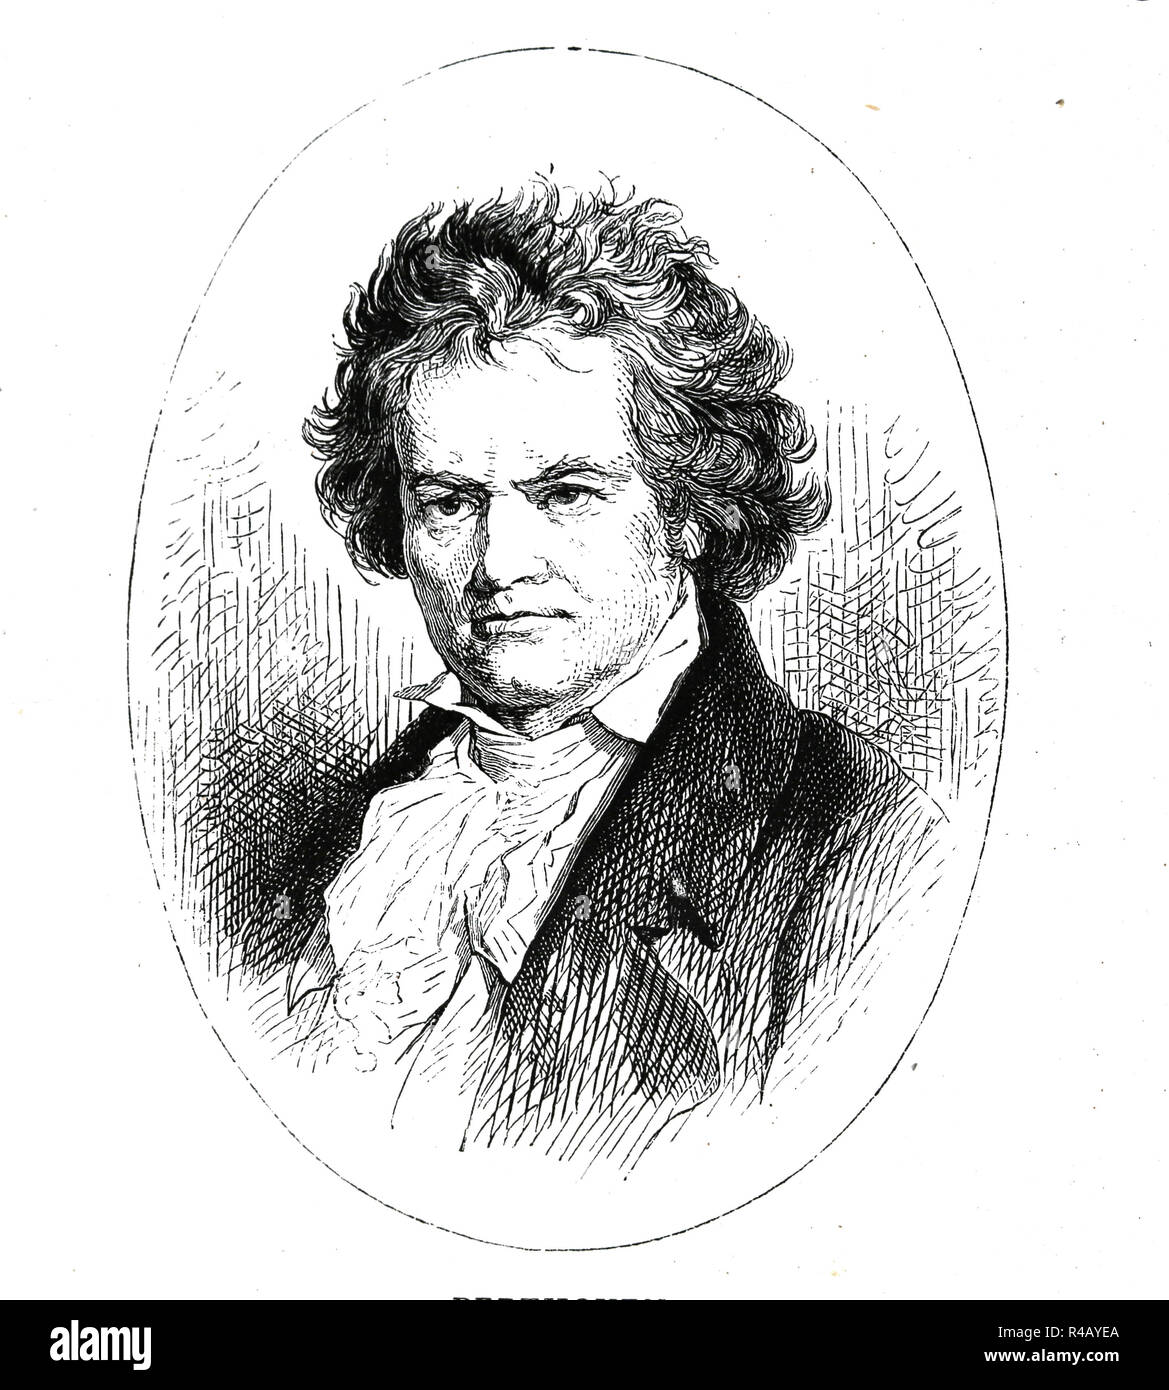 Ludwing van Beethoven (1770-1827). German composer and pianist. Engraving of Germania, 1882. - Stock Image